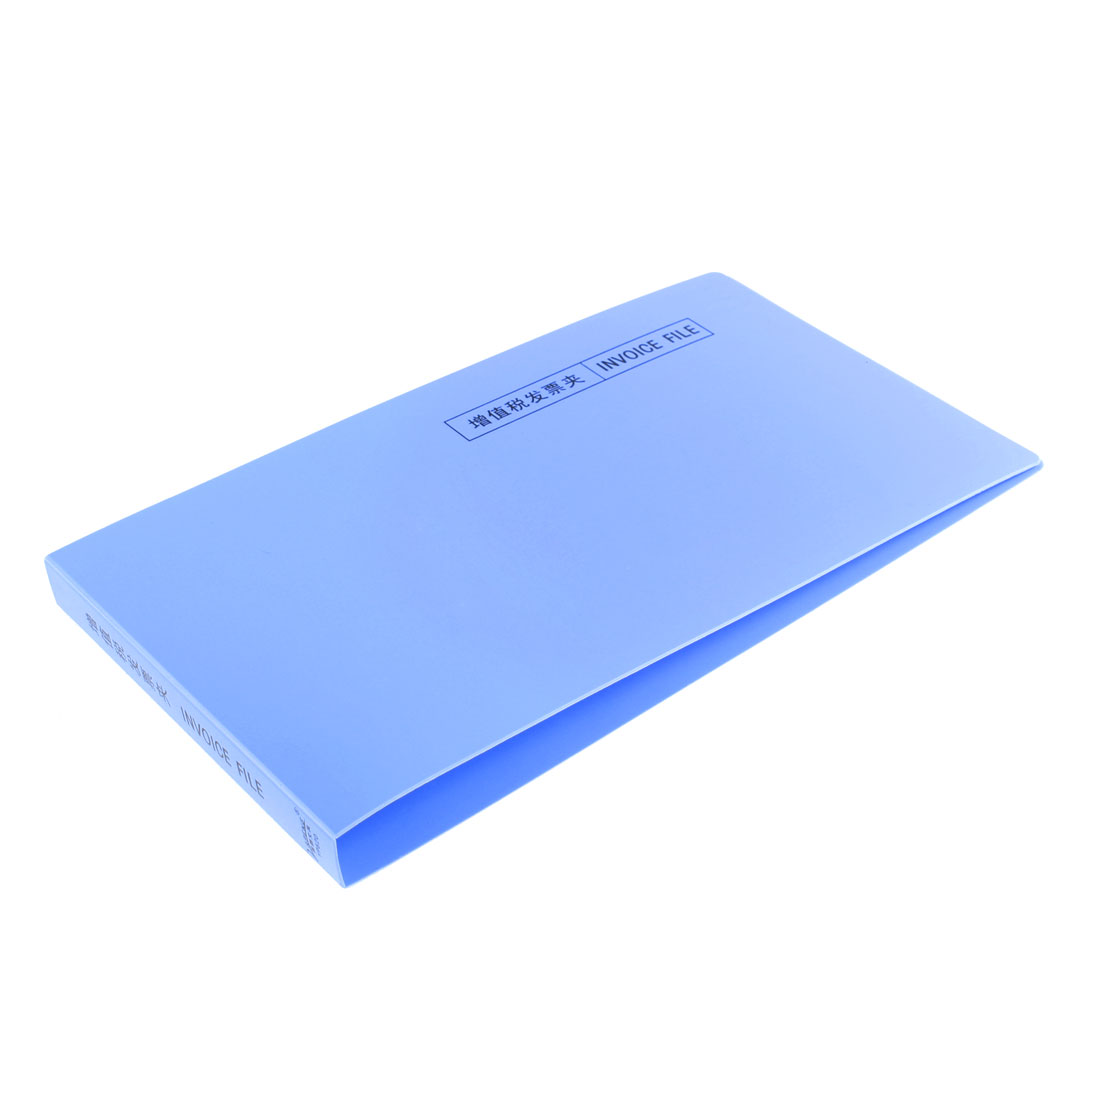 Office Metal Lever Clip Documents Receipt Invoice Organizer File Folder Blue